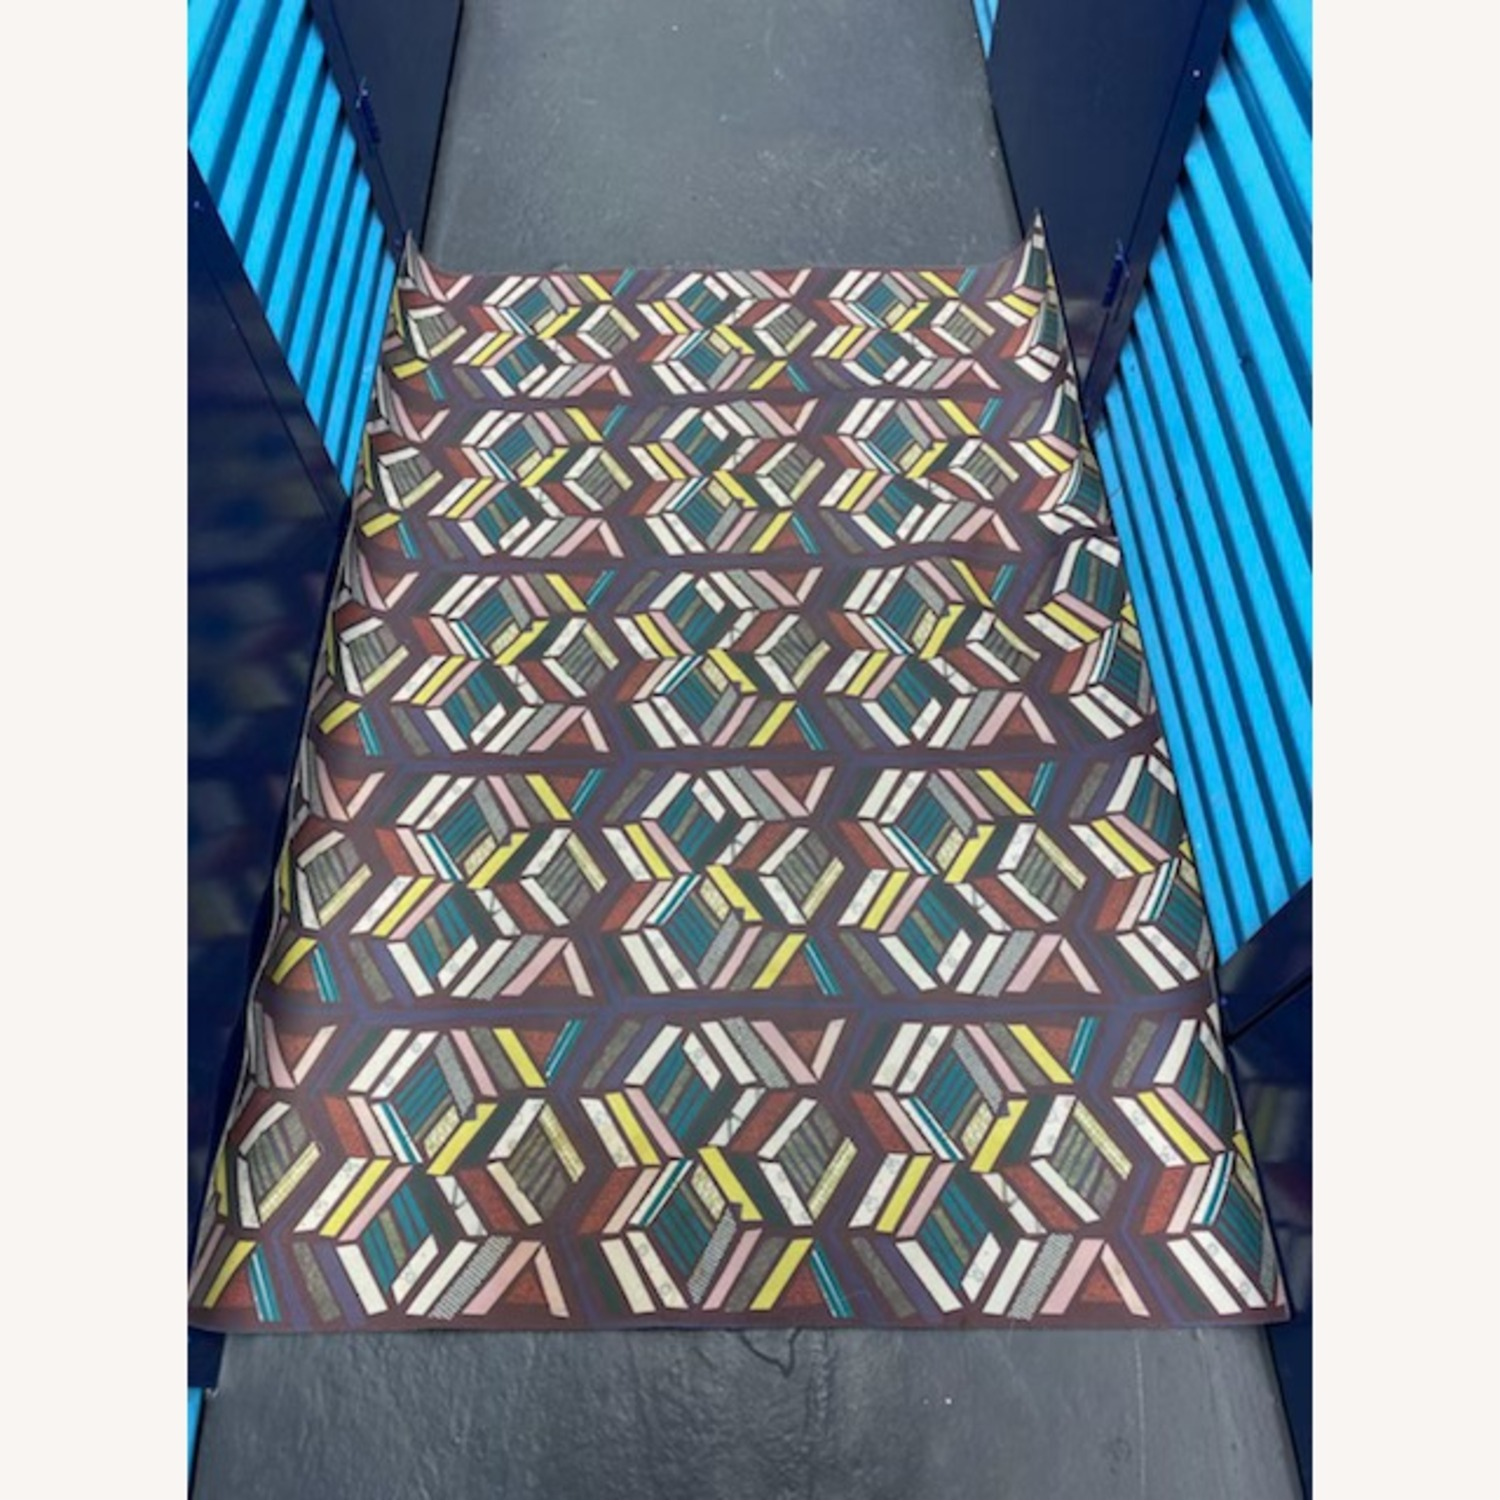 Domestic Construction Patterned Floor Mats (2) - image-1